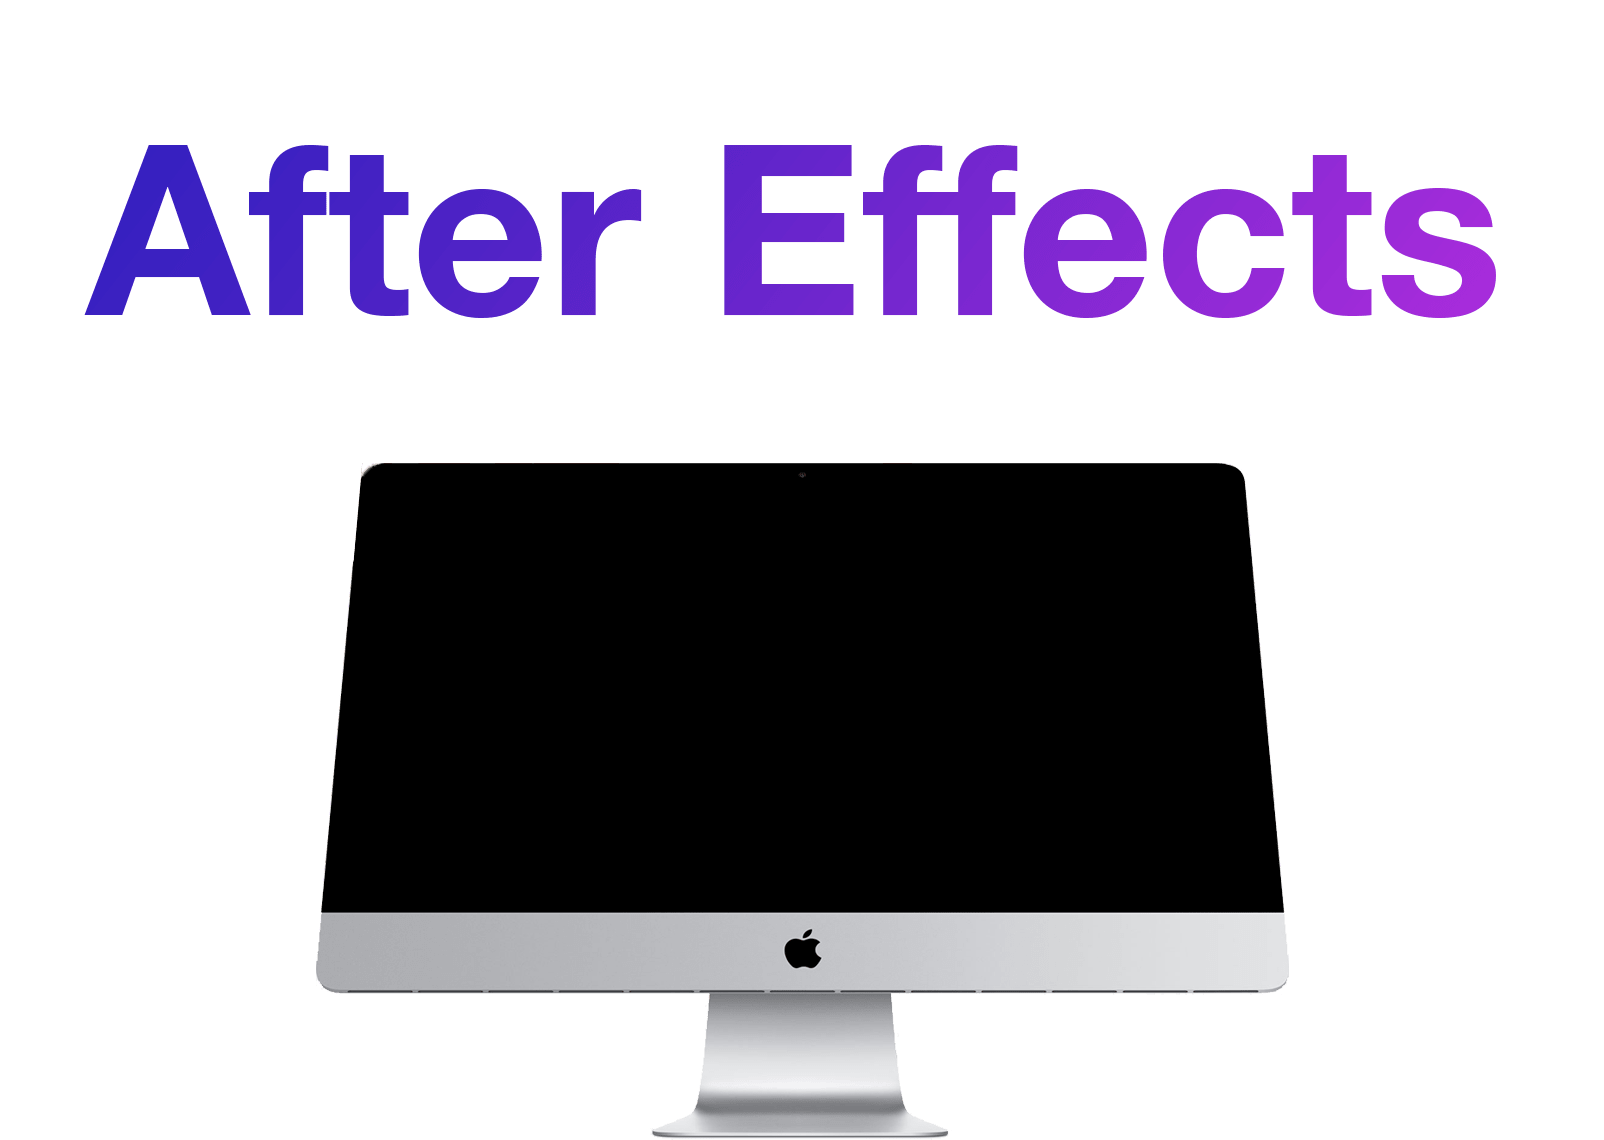 imac-display image after effect - ColorME 1